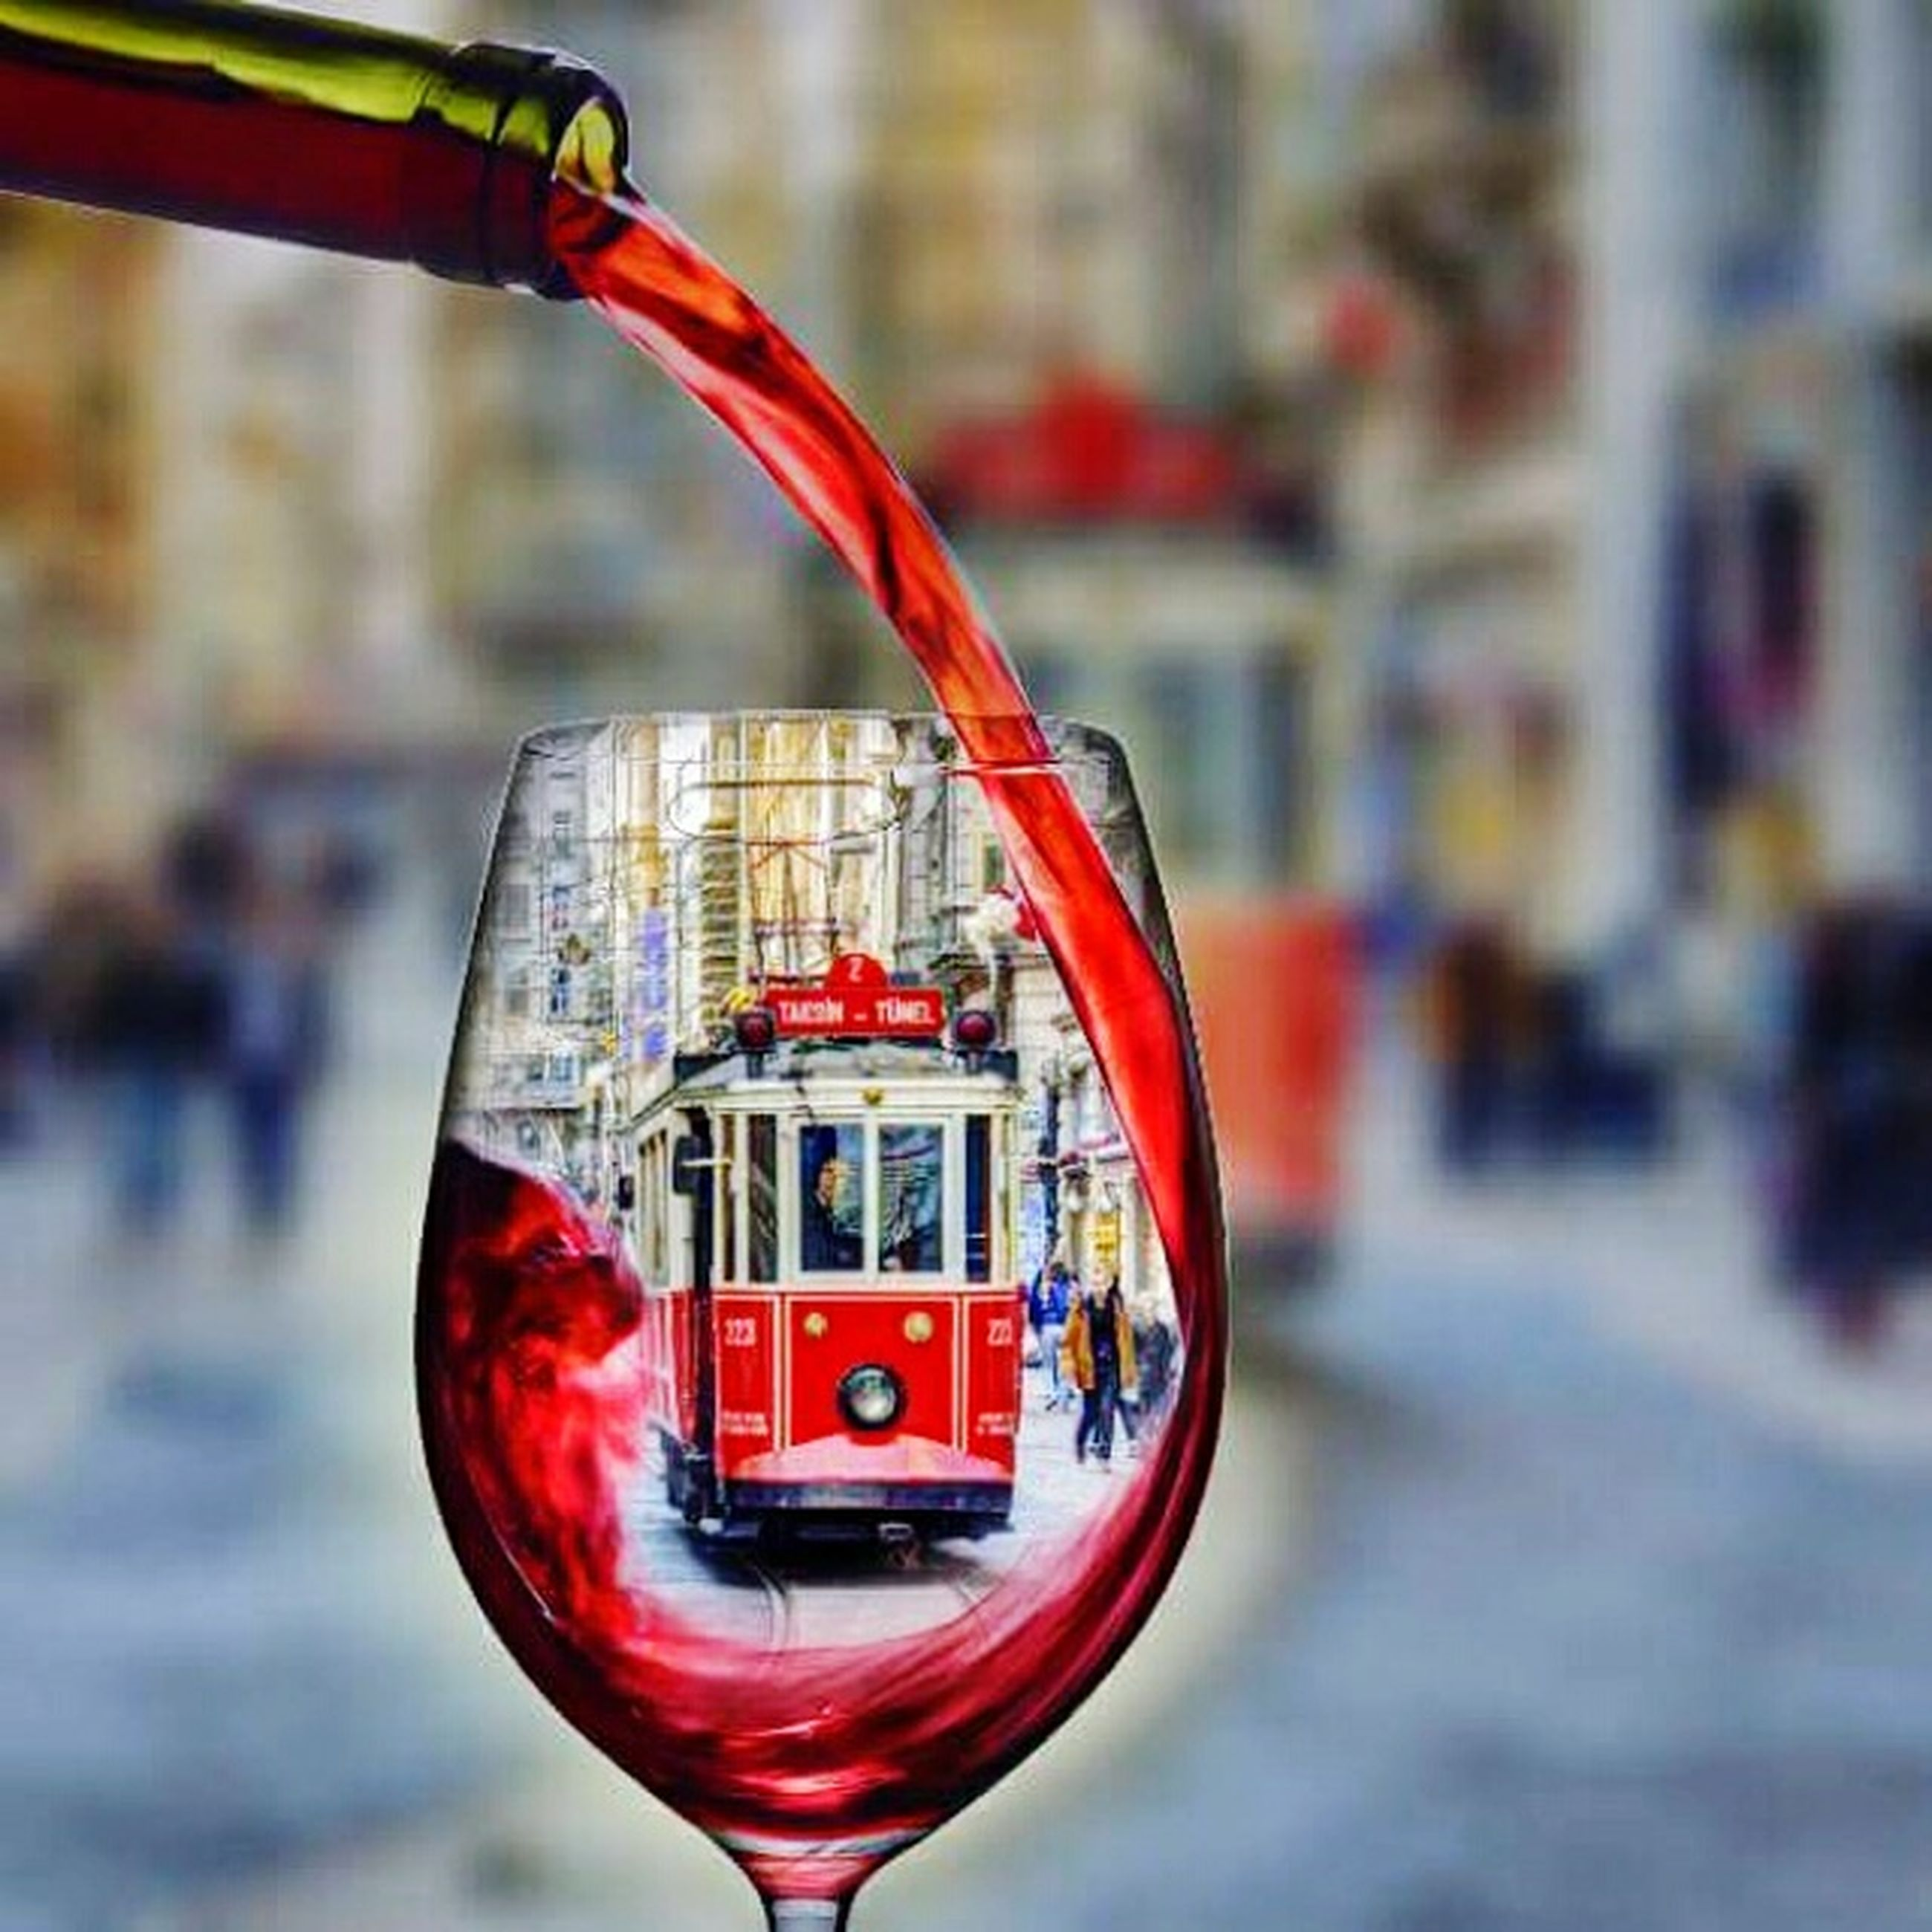 focus on foreground, red, building exterior, architecture, built structure, transparent, close-up, reflection, glass - material, city, incidental people, mid-air, outdoors, day, water, flying, window, street, no people, selective focus